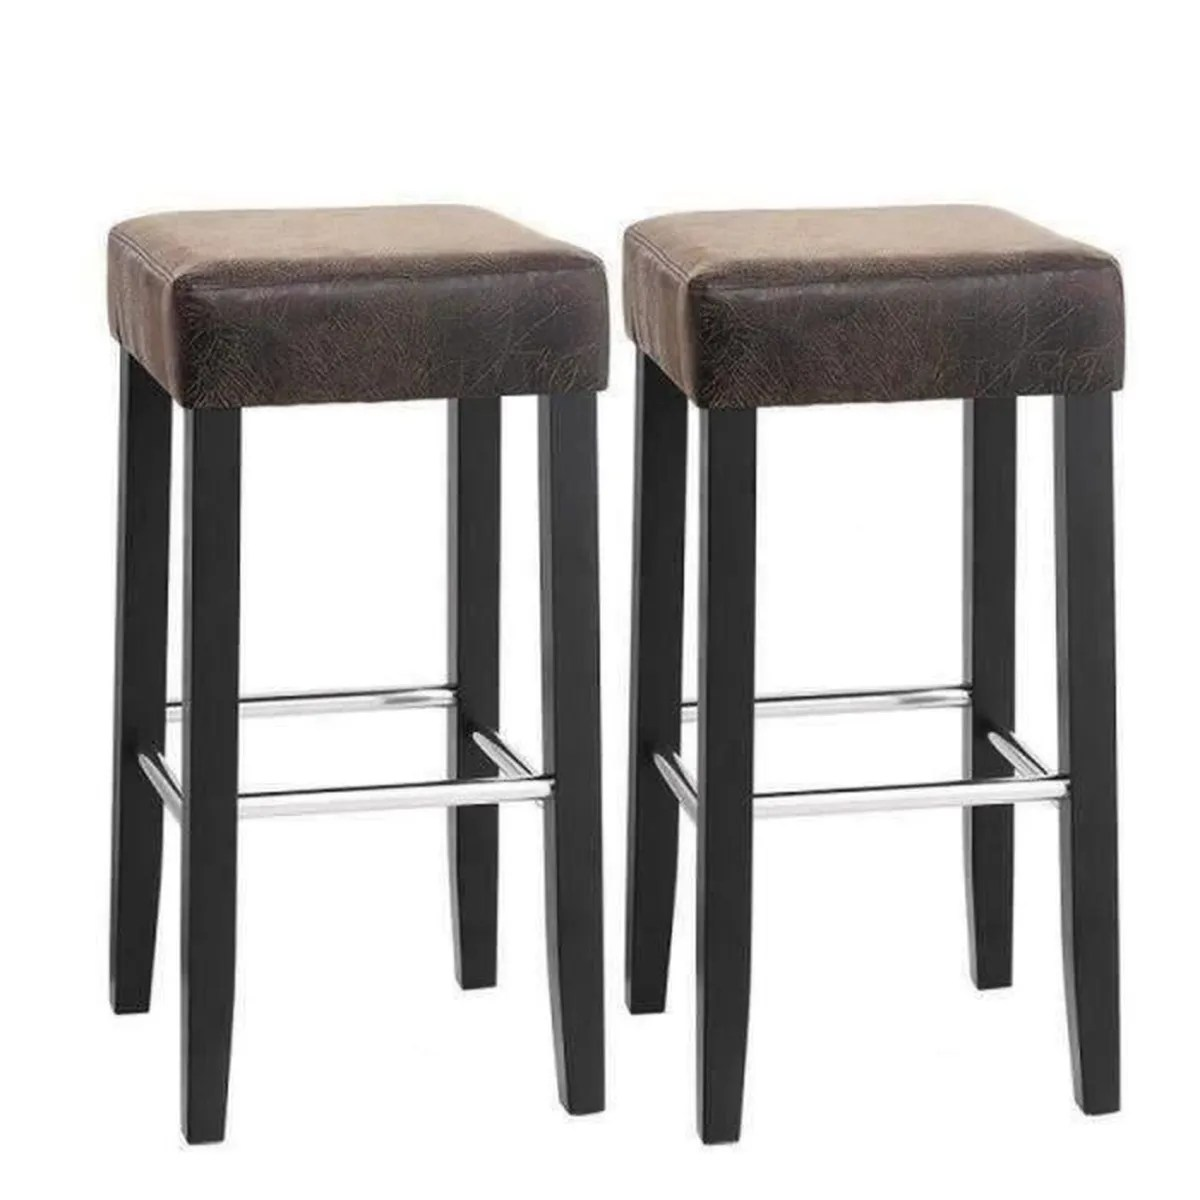 Songmics Lot De 2 Tabourets De Bar Stool Lot De 2 Tabourets De Bar En Pu Avec Repose Pieds Pieds En Bois